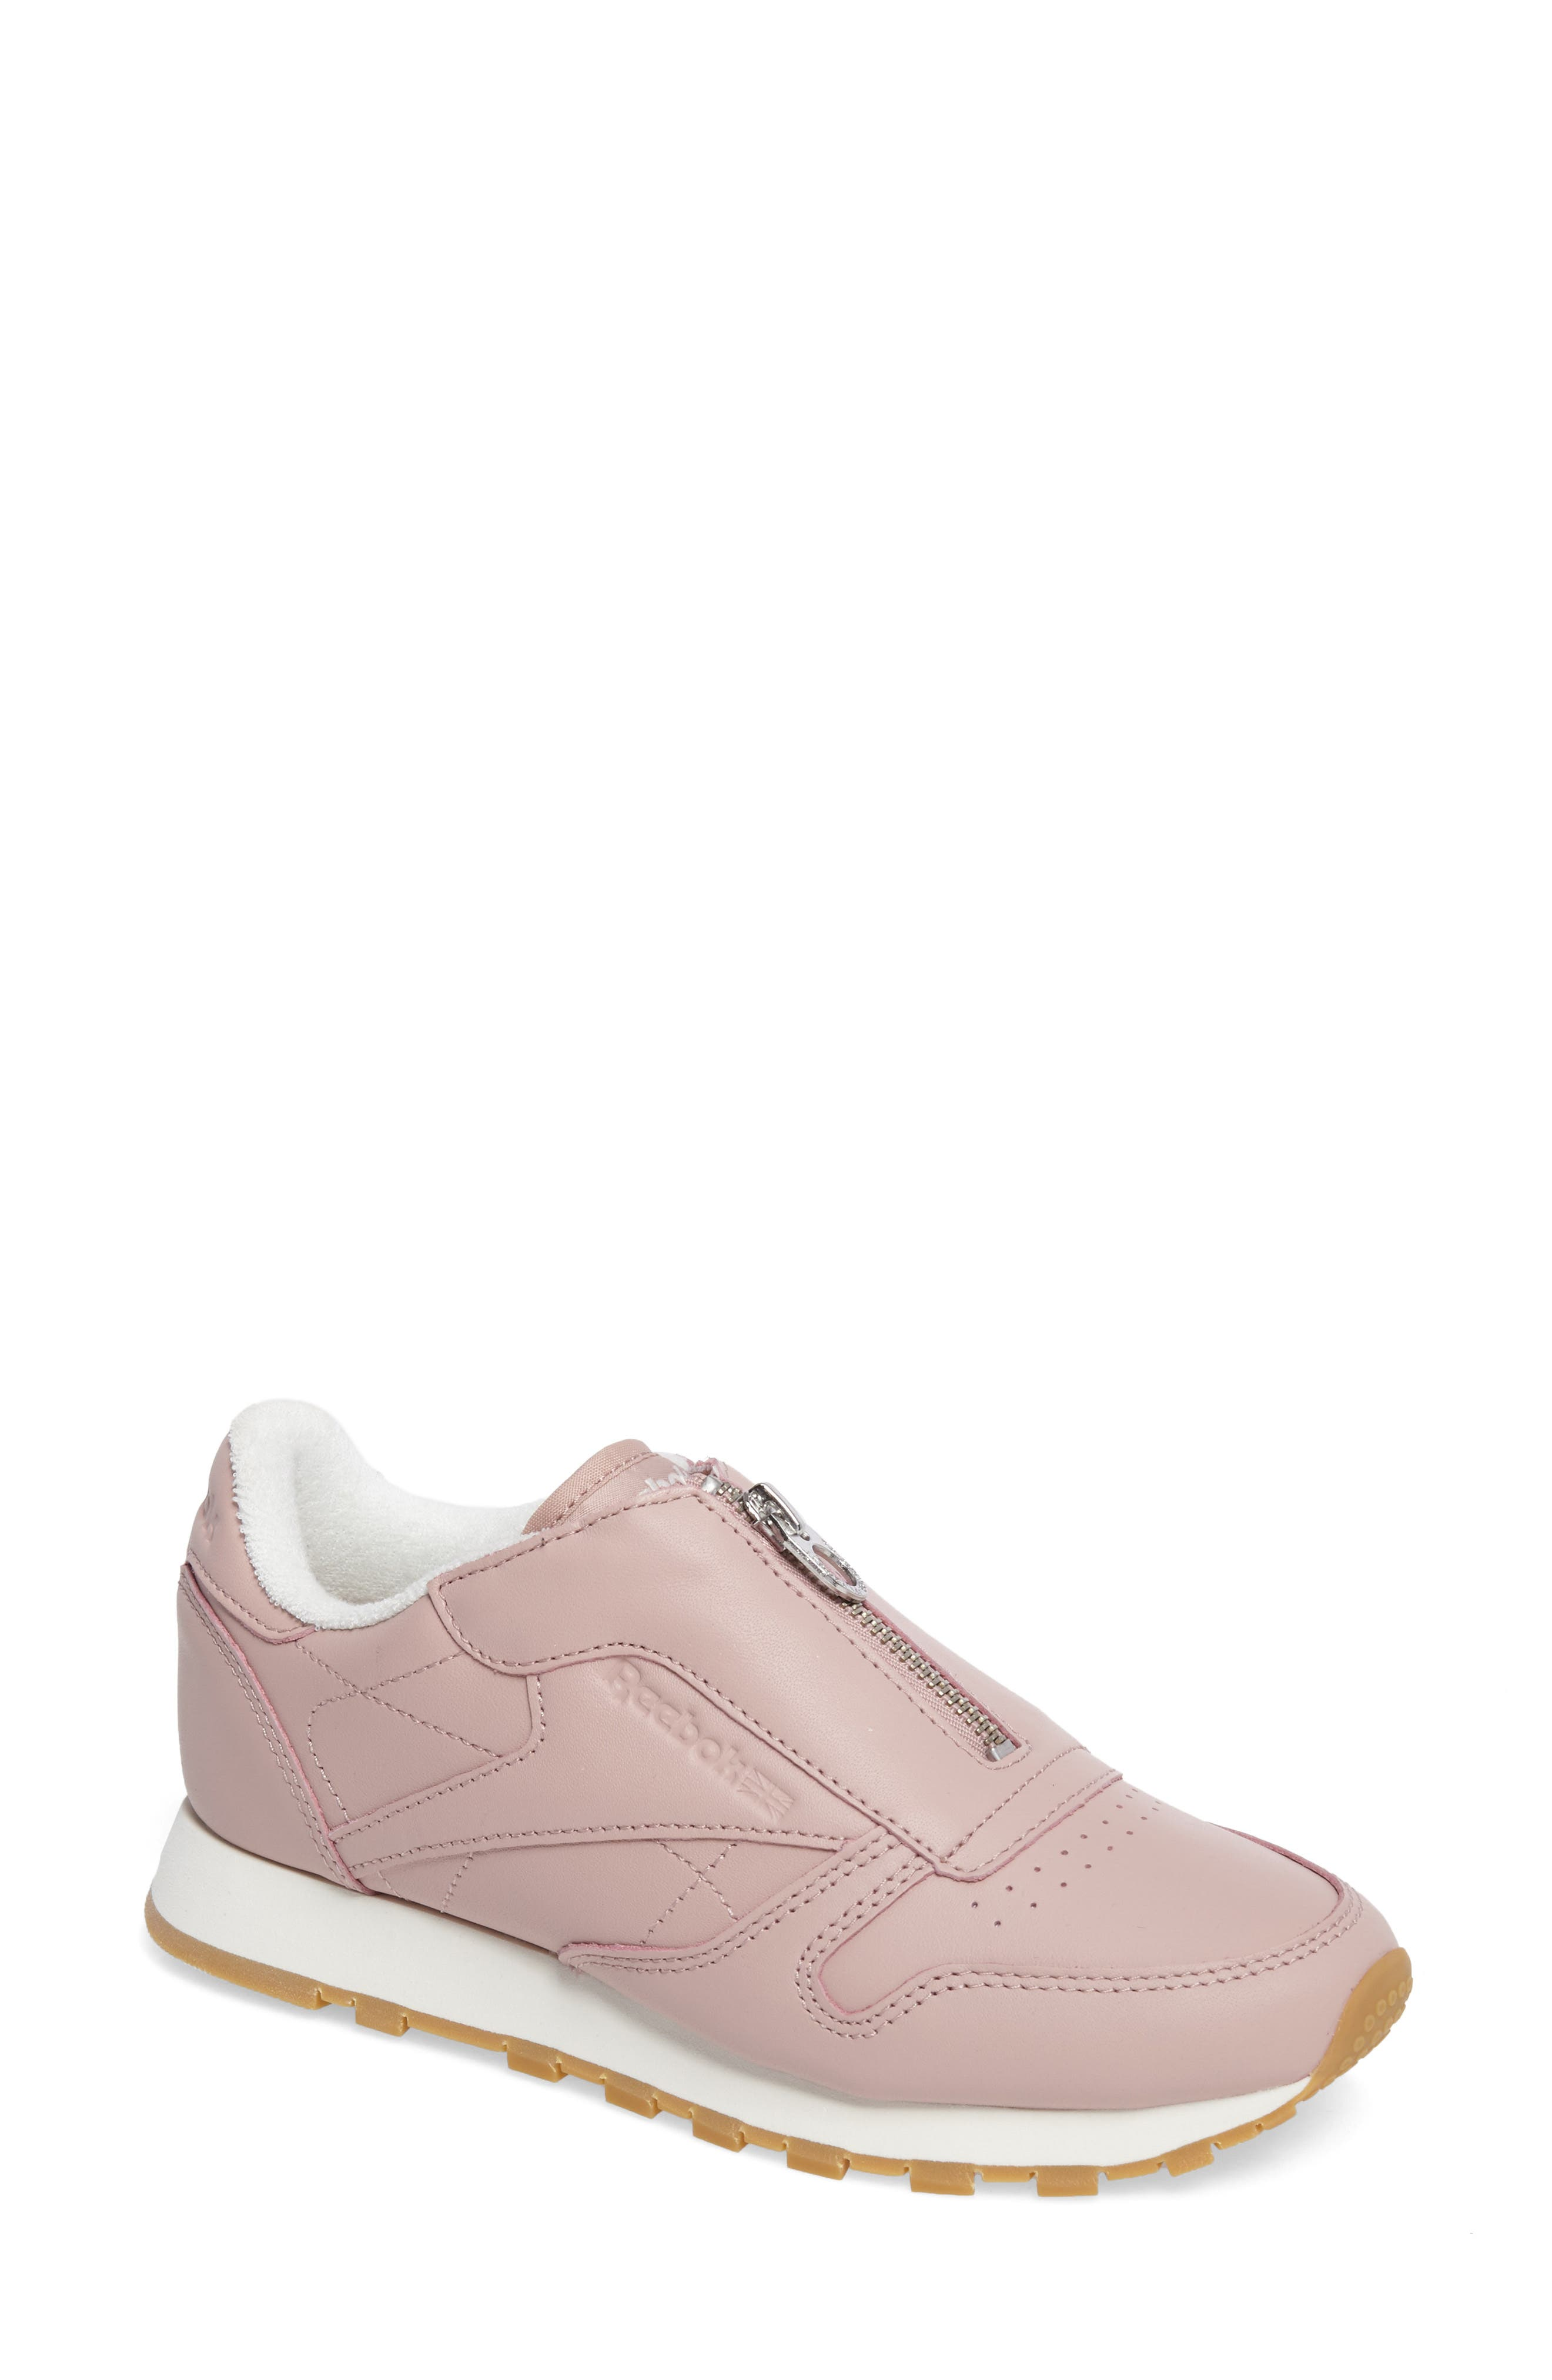 Classic Zip Sneaker,                         Main,                         color, Shell Pink/ Chalk/ Silver